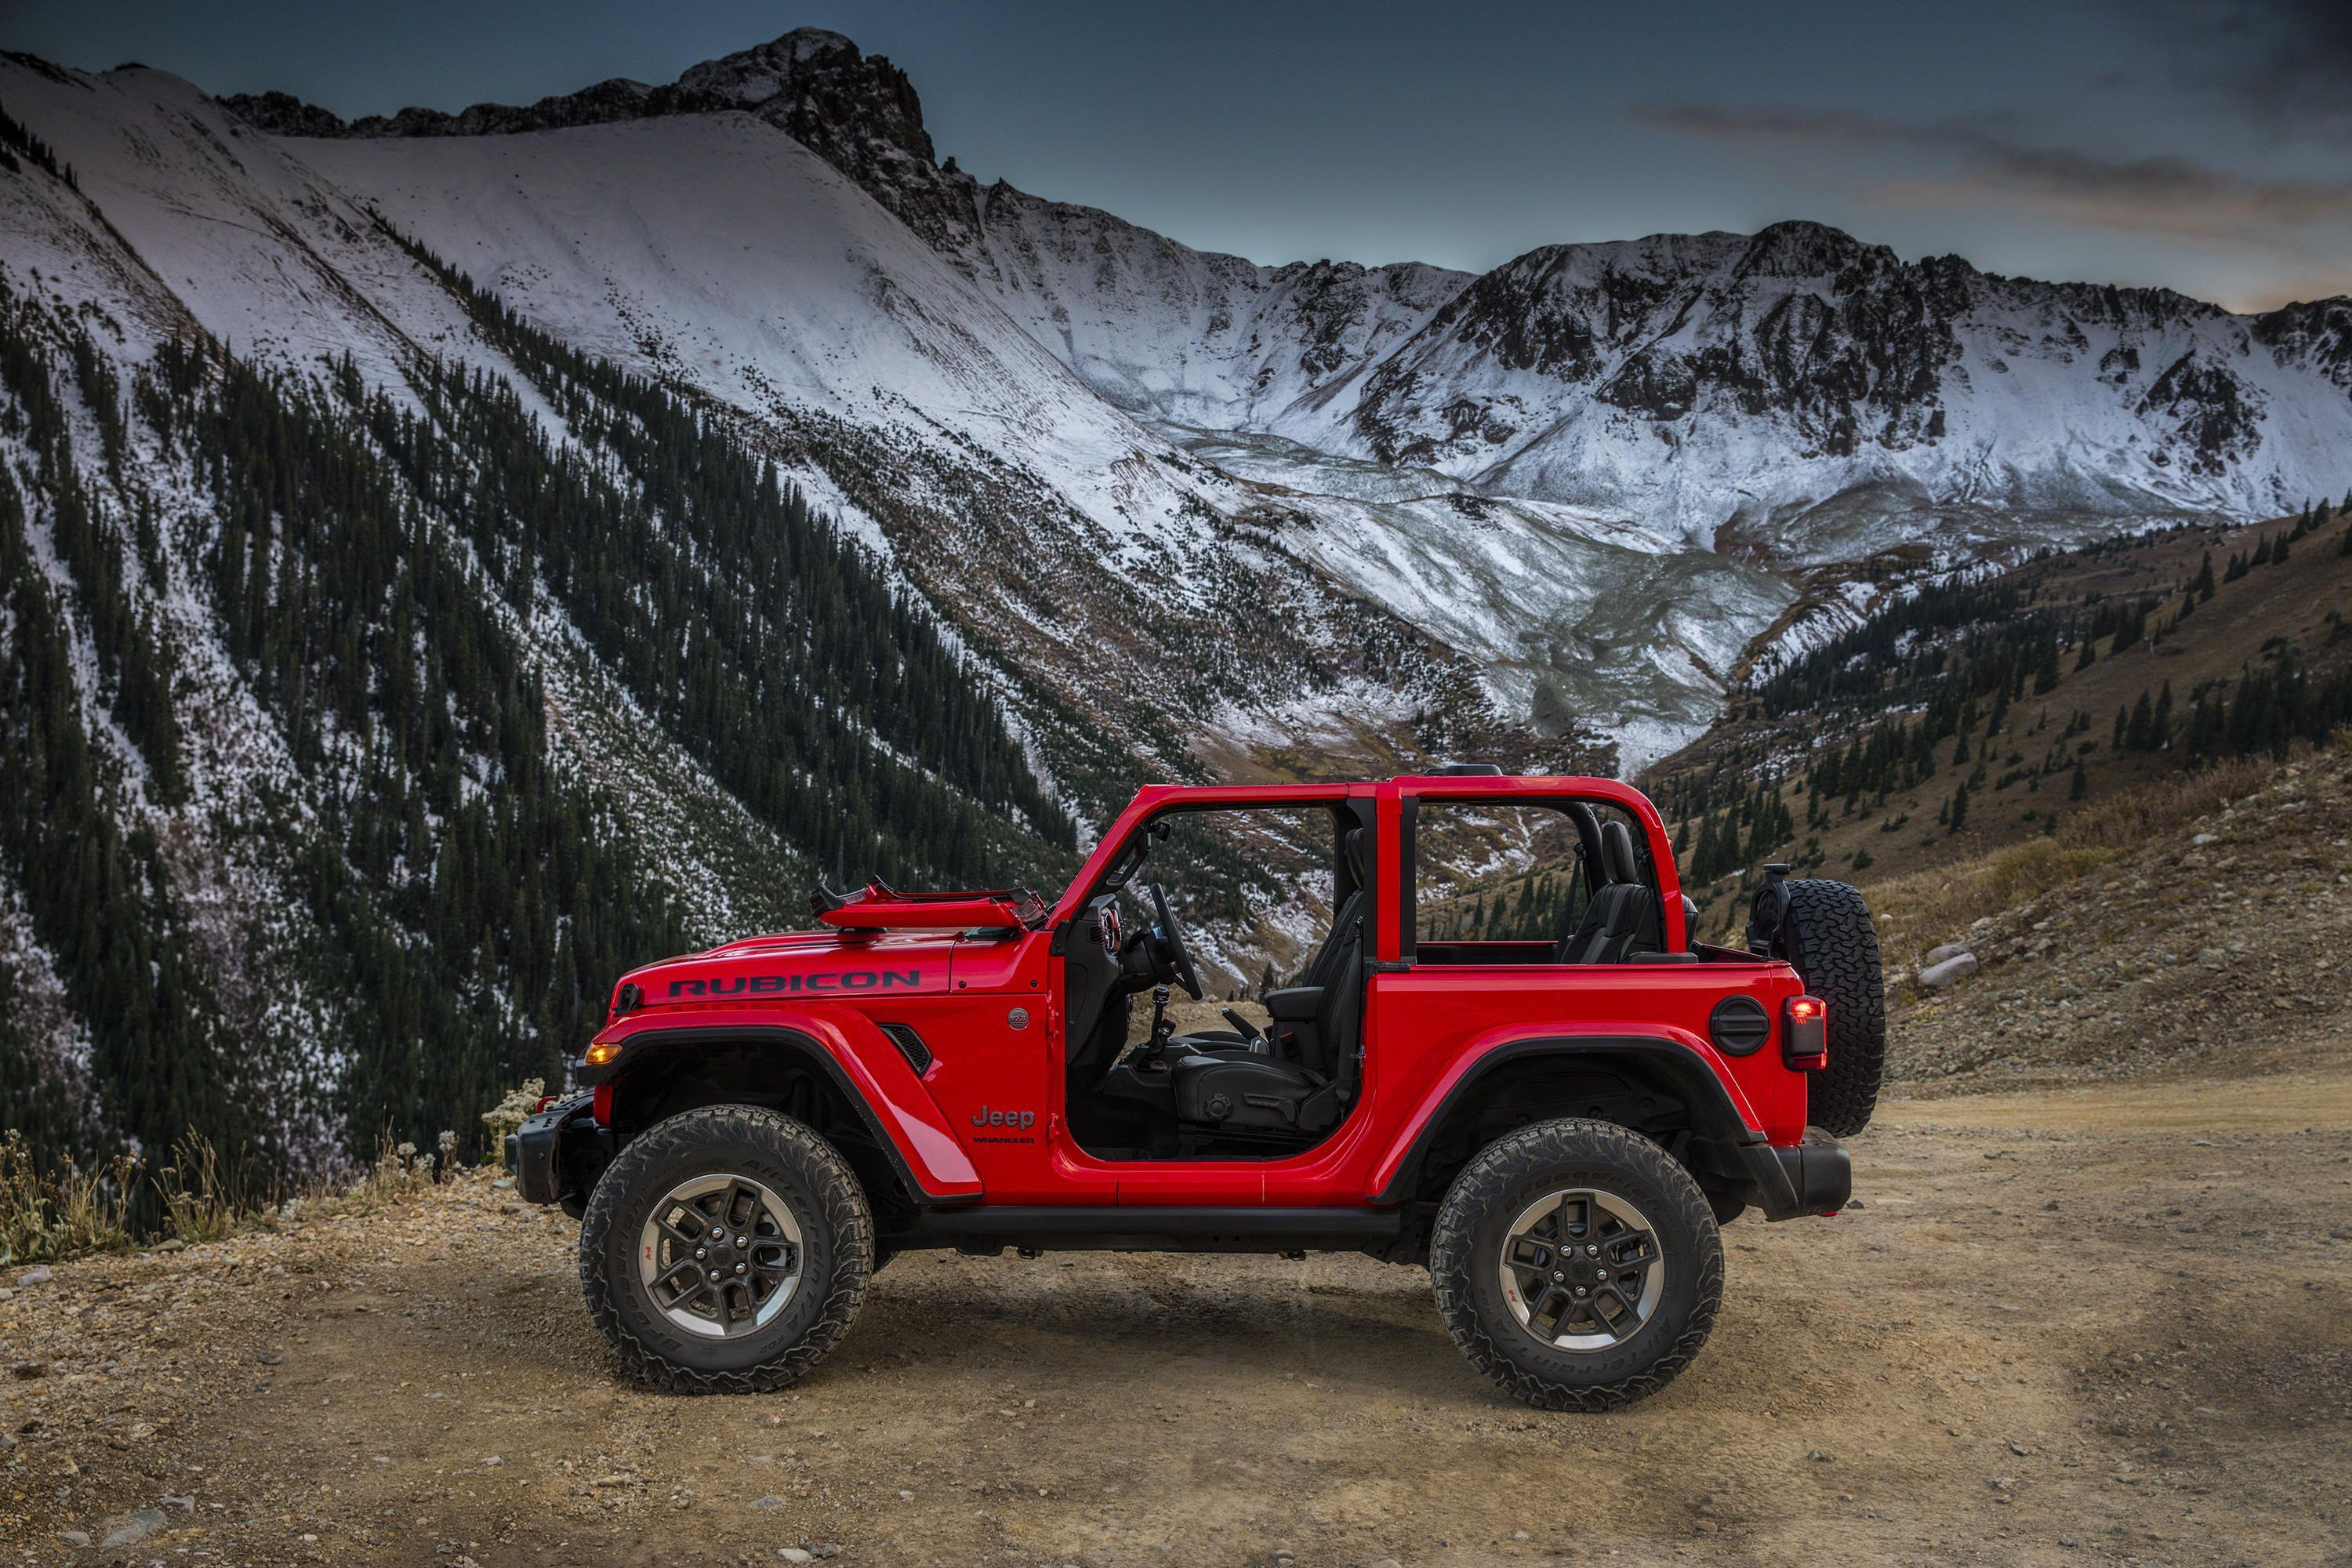 Jeep Wrangler 2018: Here Are Brand New Photos